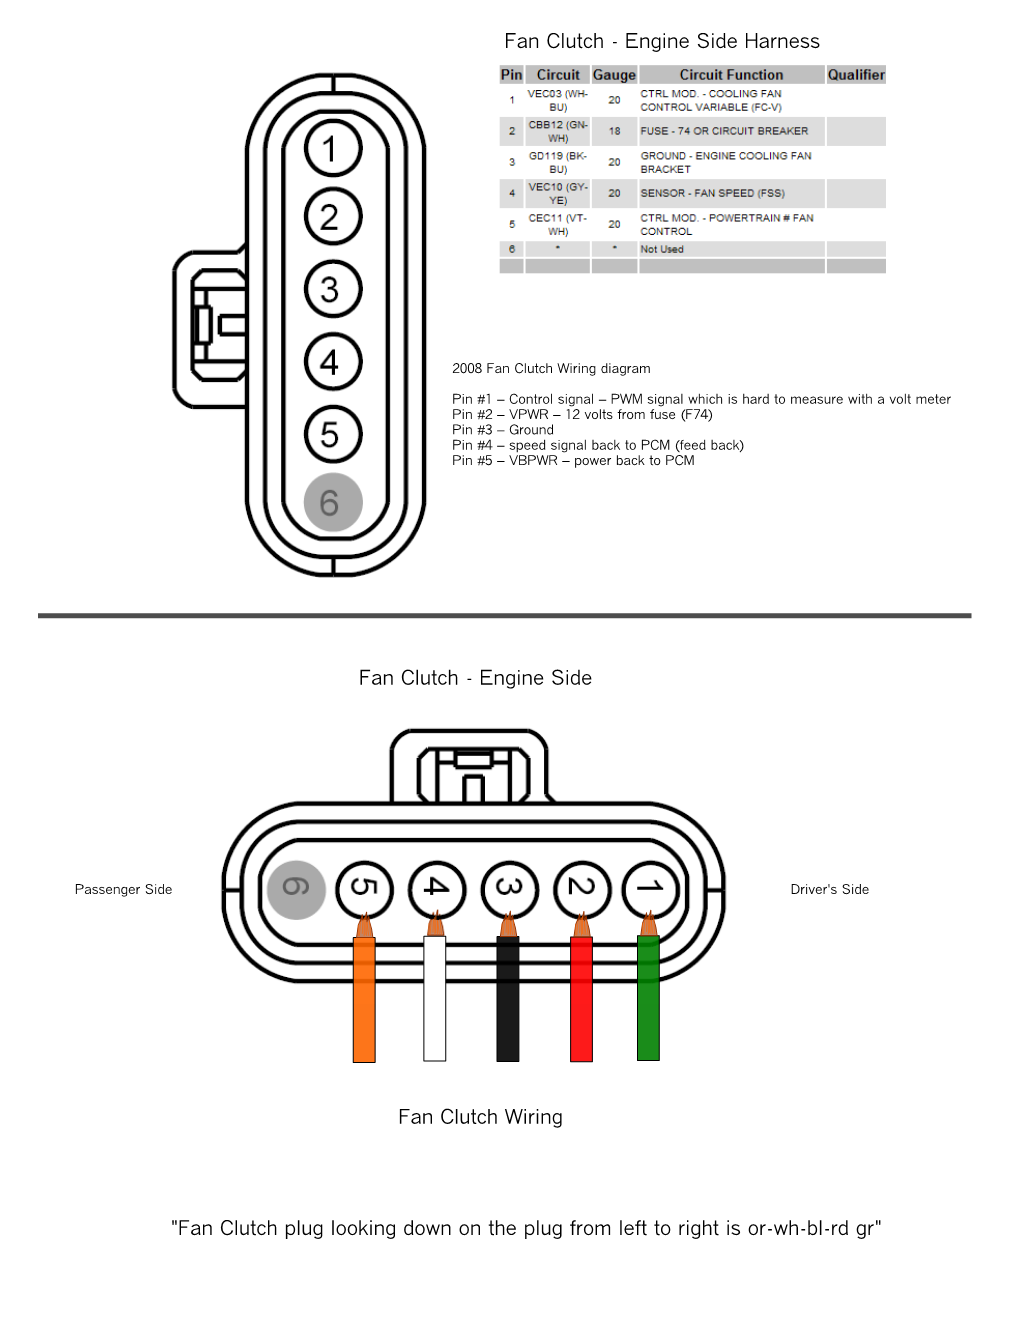 [DIAGRAM_38ZD]  Fan Clutch Wiring Fix (Pulled out of Harness) | Ford Powerstroke Diesel  Forum | 2008 Ford F350 Cooling Fan Wiring |  | Powerstroke.org